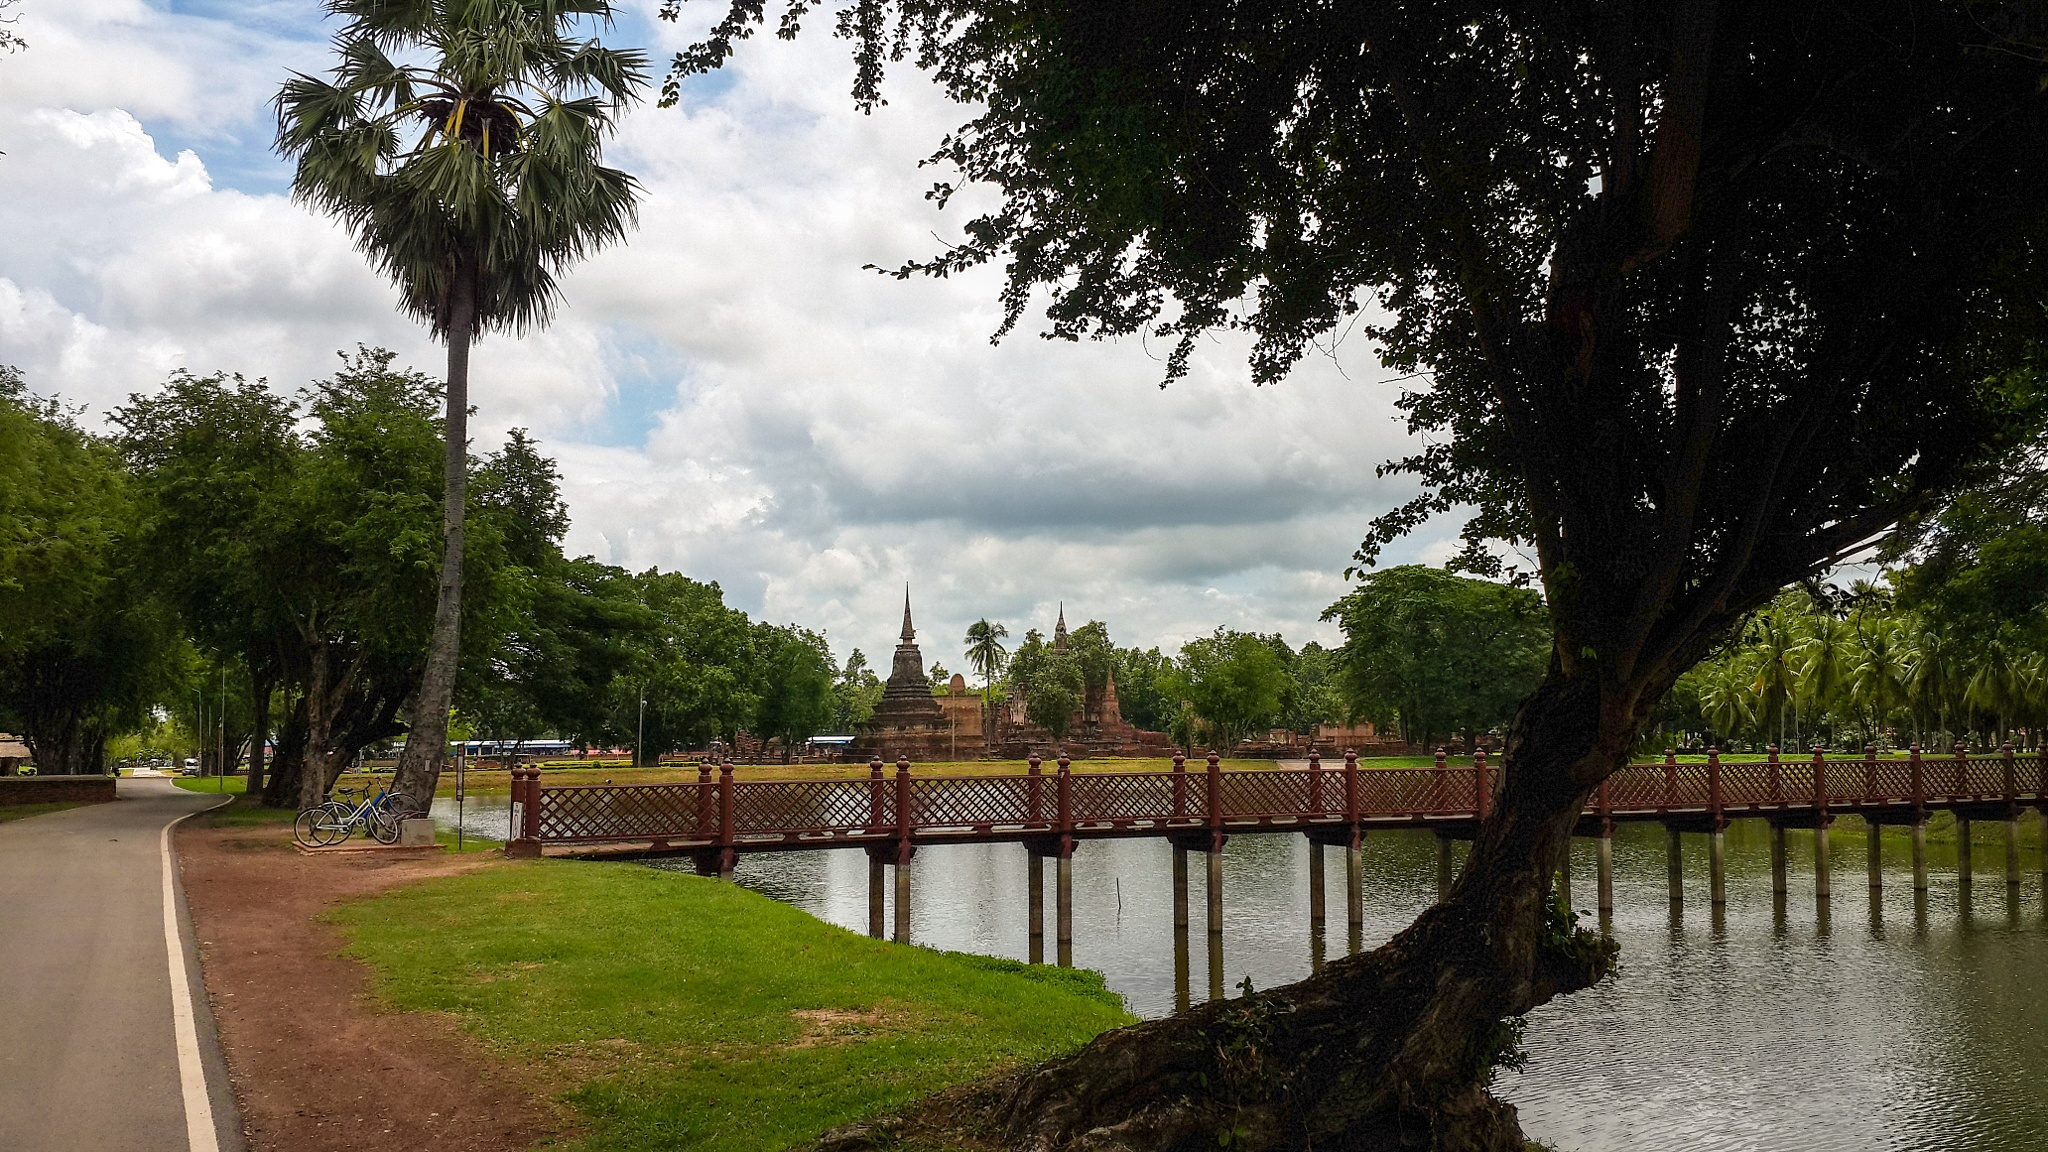 Sukhothai historical park by kp2609